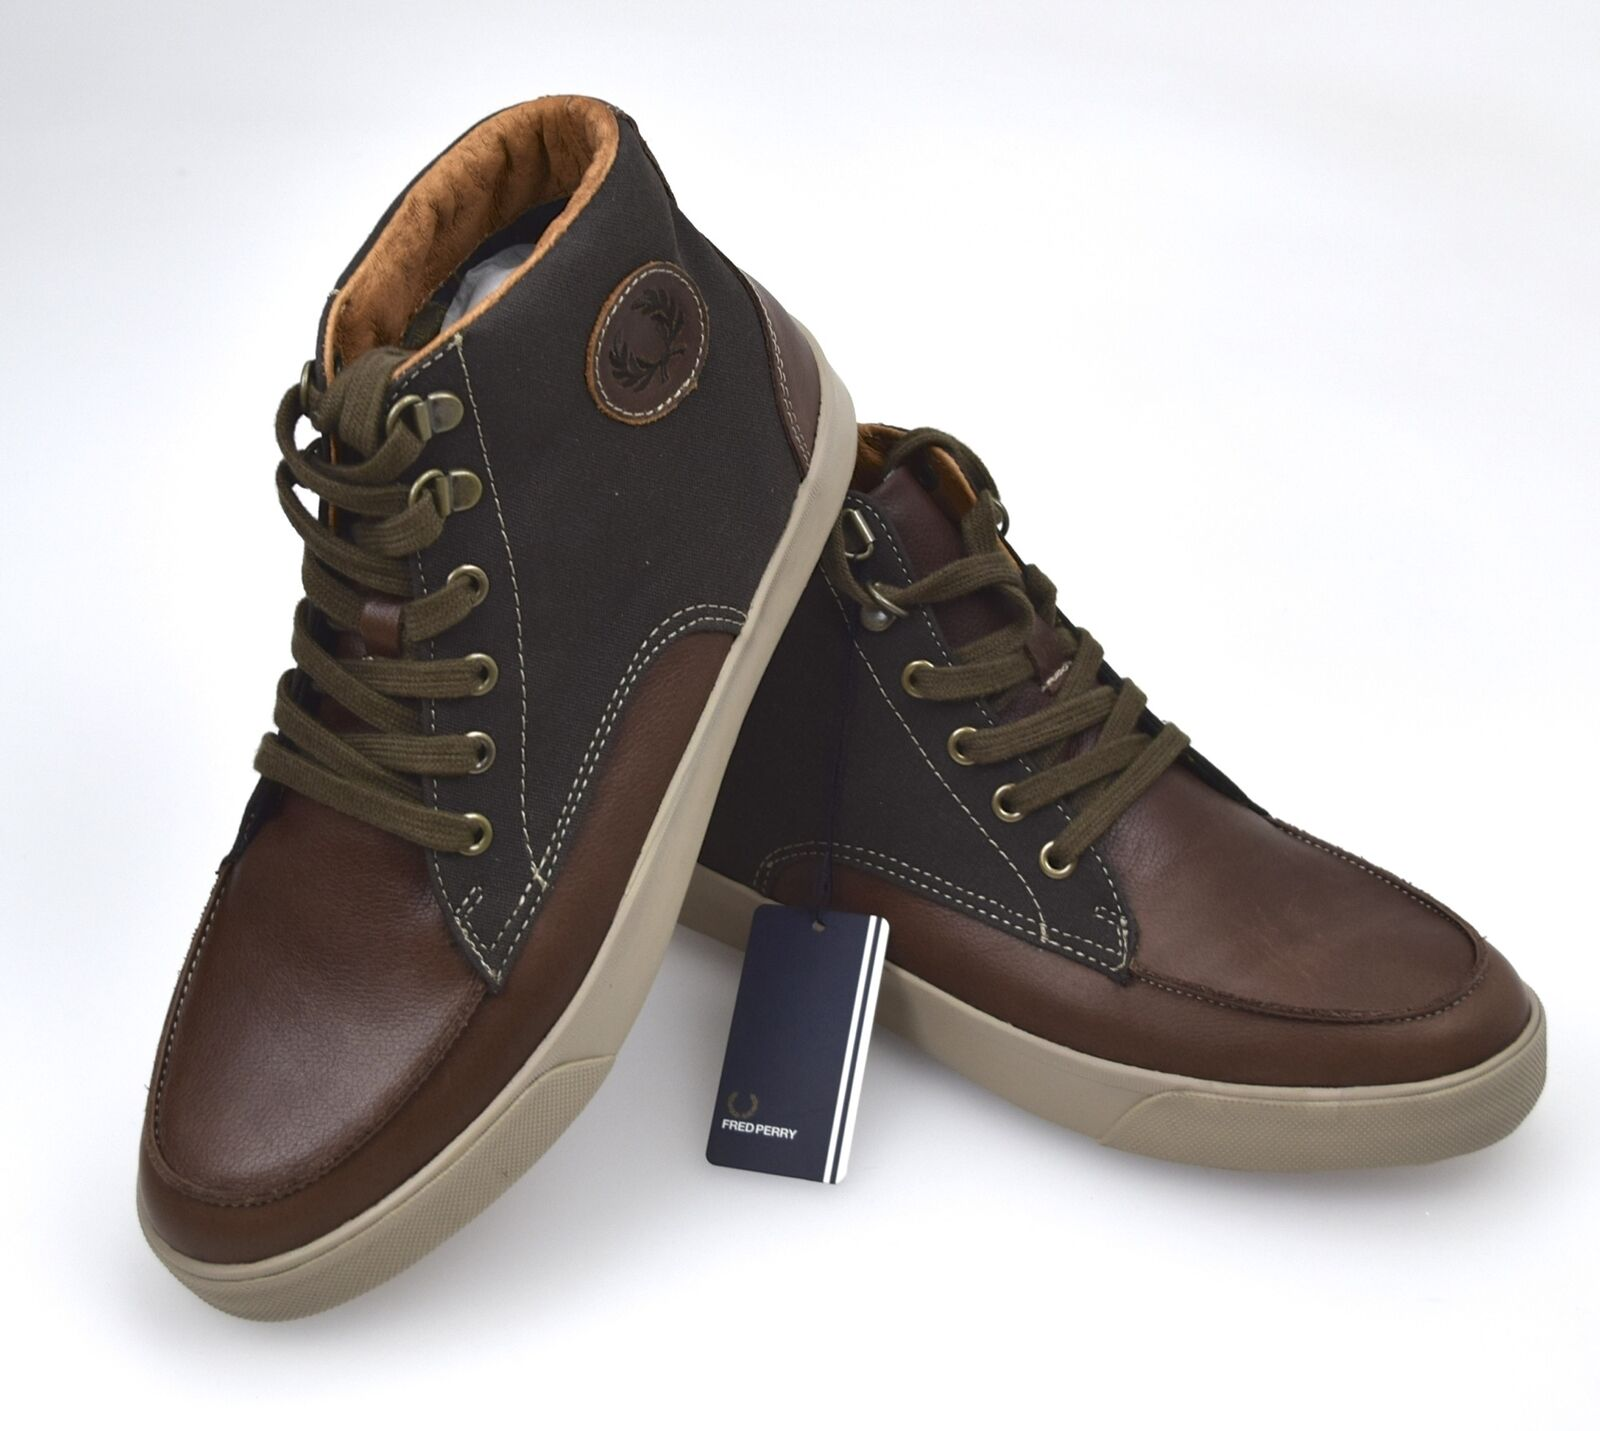 FRED PERRY MAN SNEAKER SHOES CASUAL FREE TIME LEATHER CODE B8107